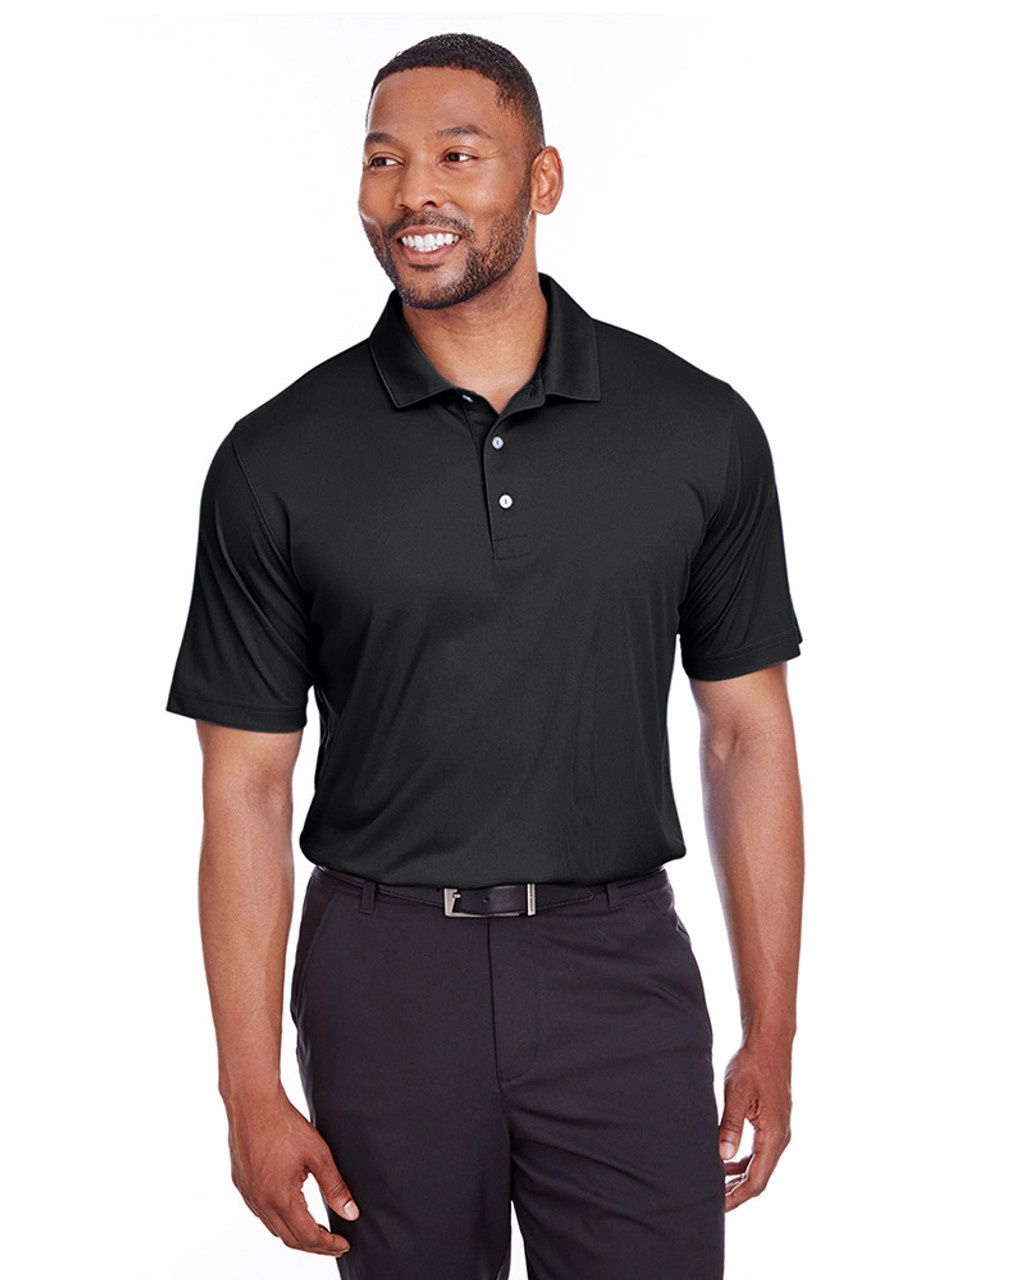 Puma Black - 596799 Puma Golf Men's Icon Golf Polo | Blankclothing.ca